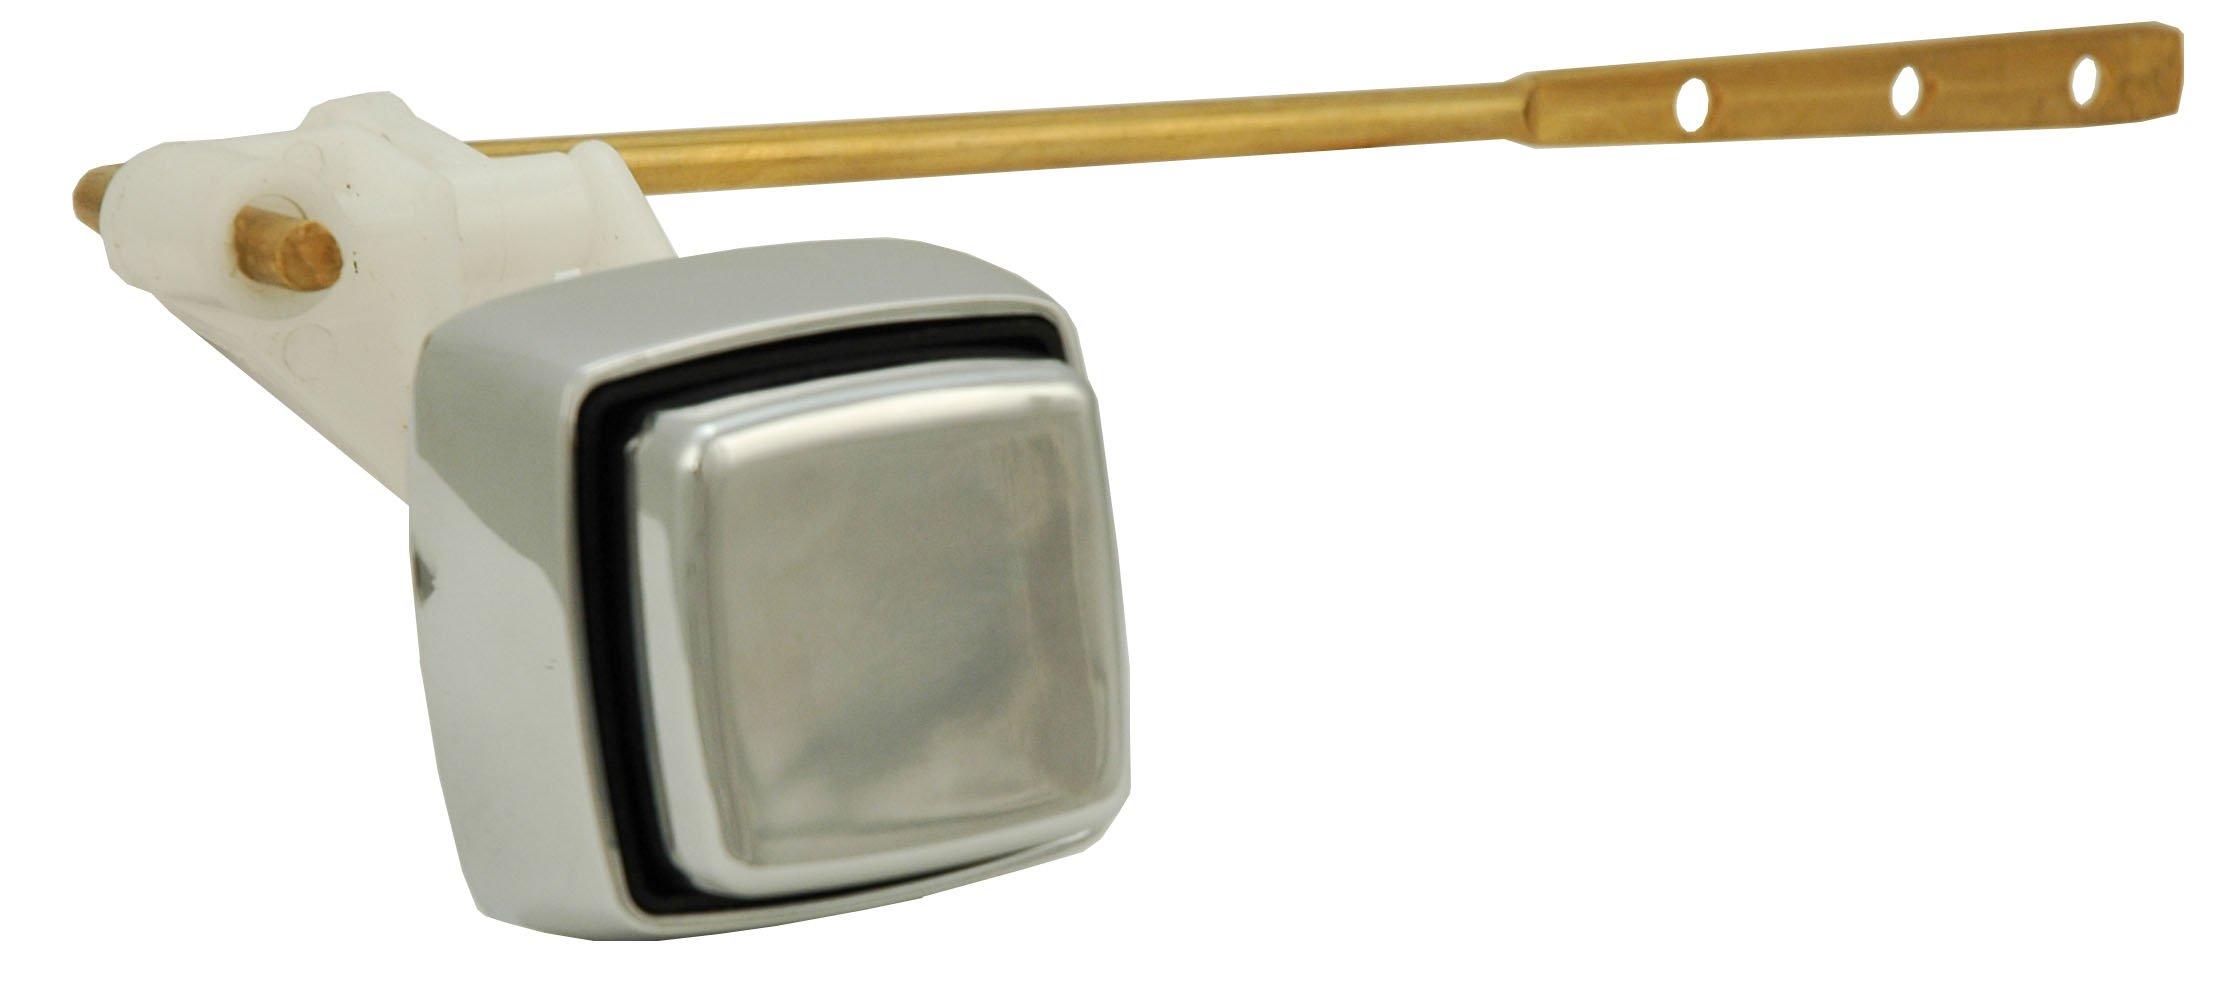 Tank Lever, Toilet Tank Handle - Push Button Style, Frontal Mount, Chrome Finish - By Plumb USA